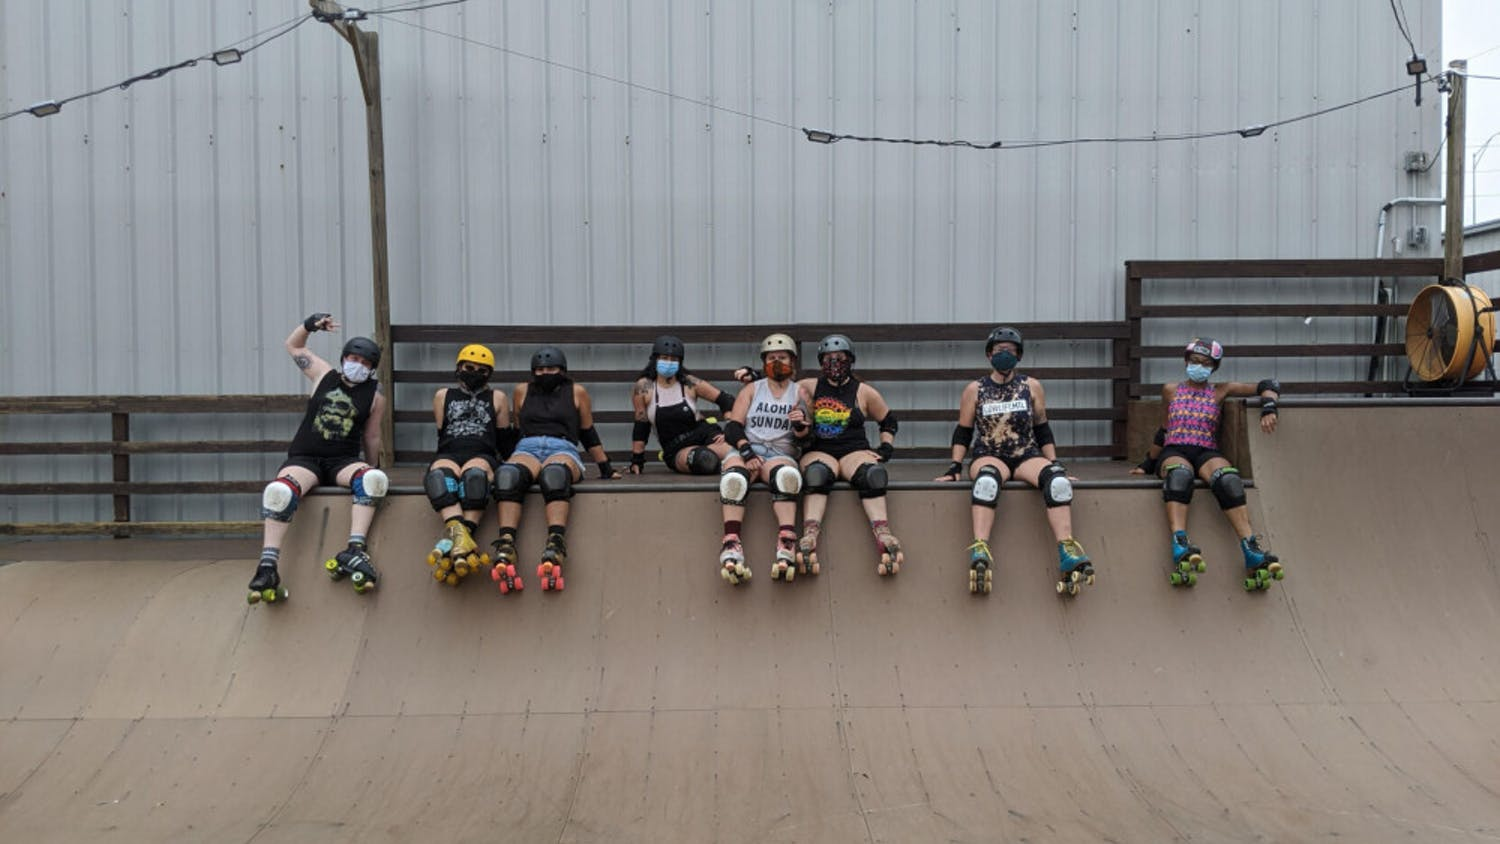 Despite practices and bouts being cancelled, the Roller Rebels have spent time at the skatepark with mask-covered faces to stay happy and healthy.